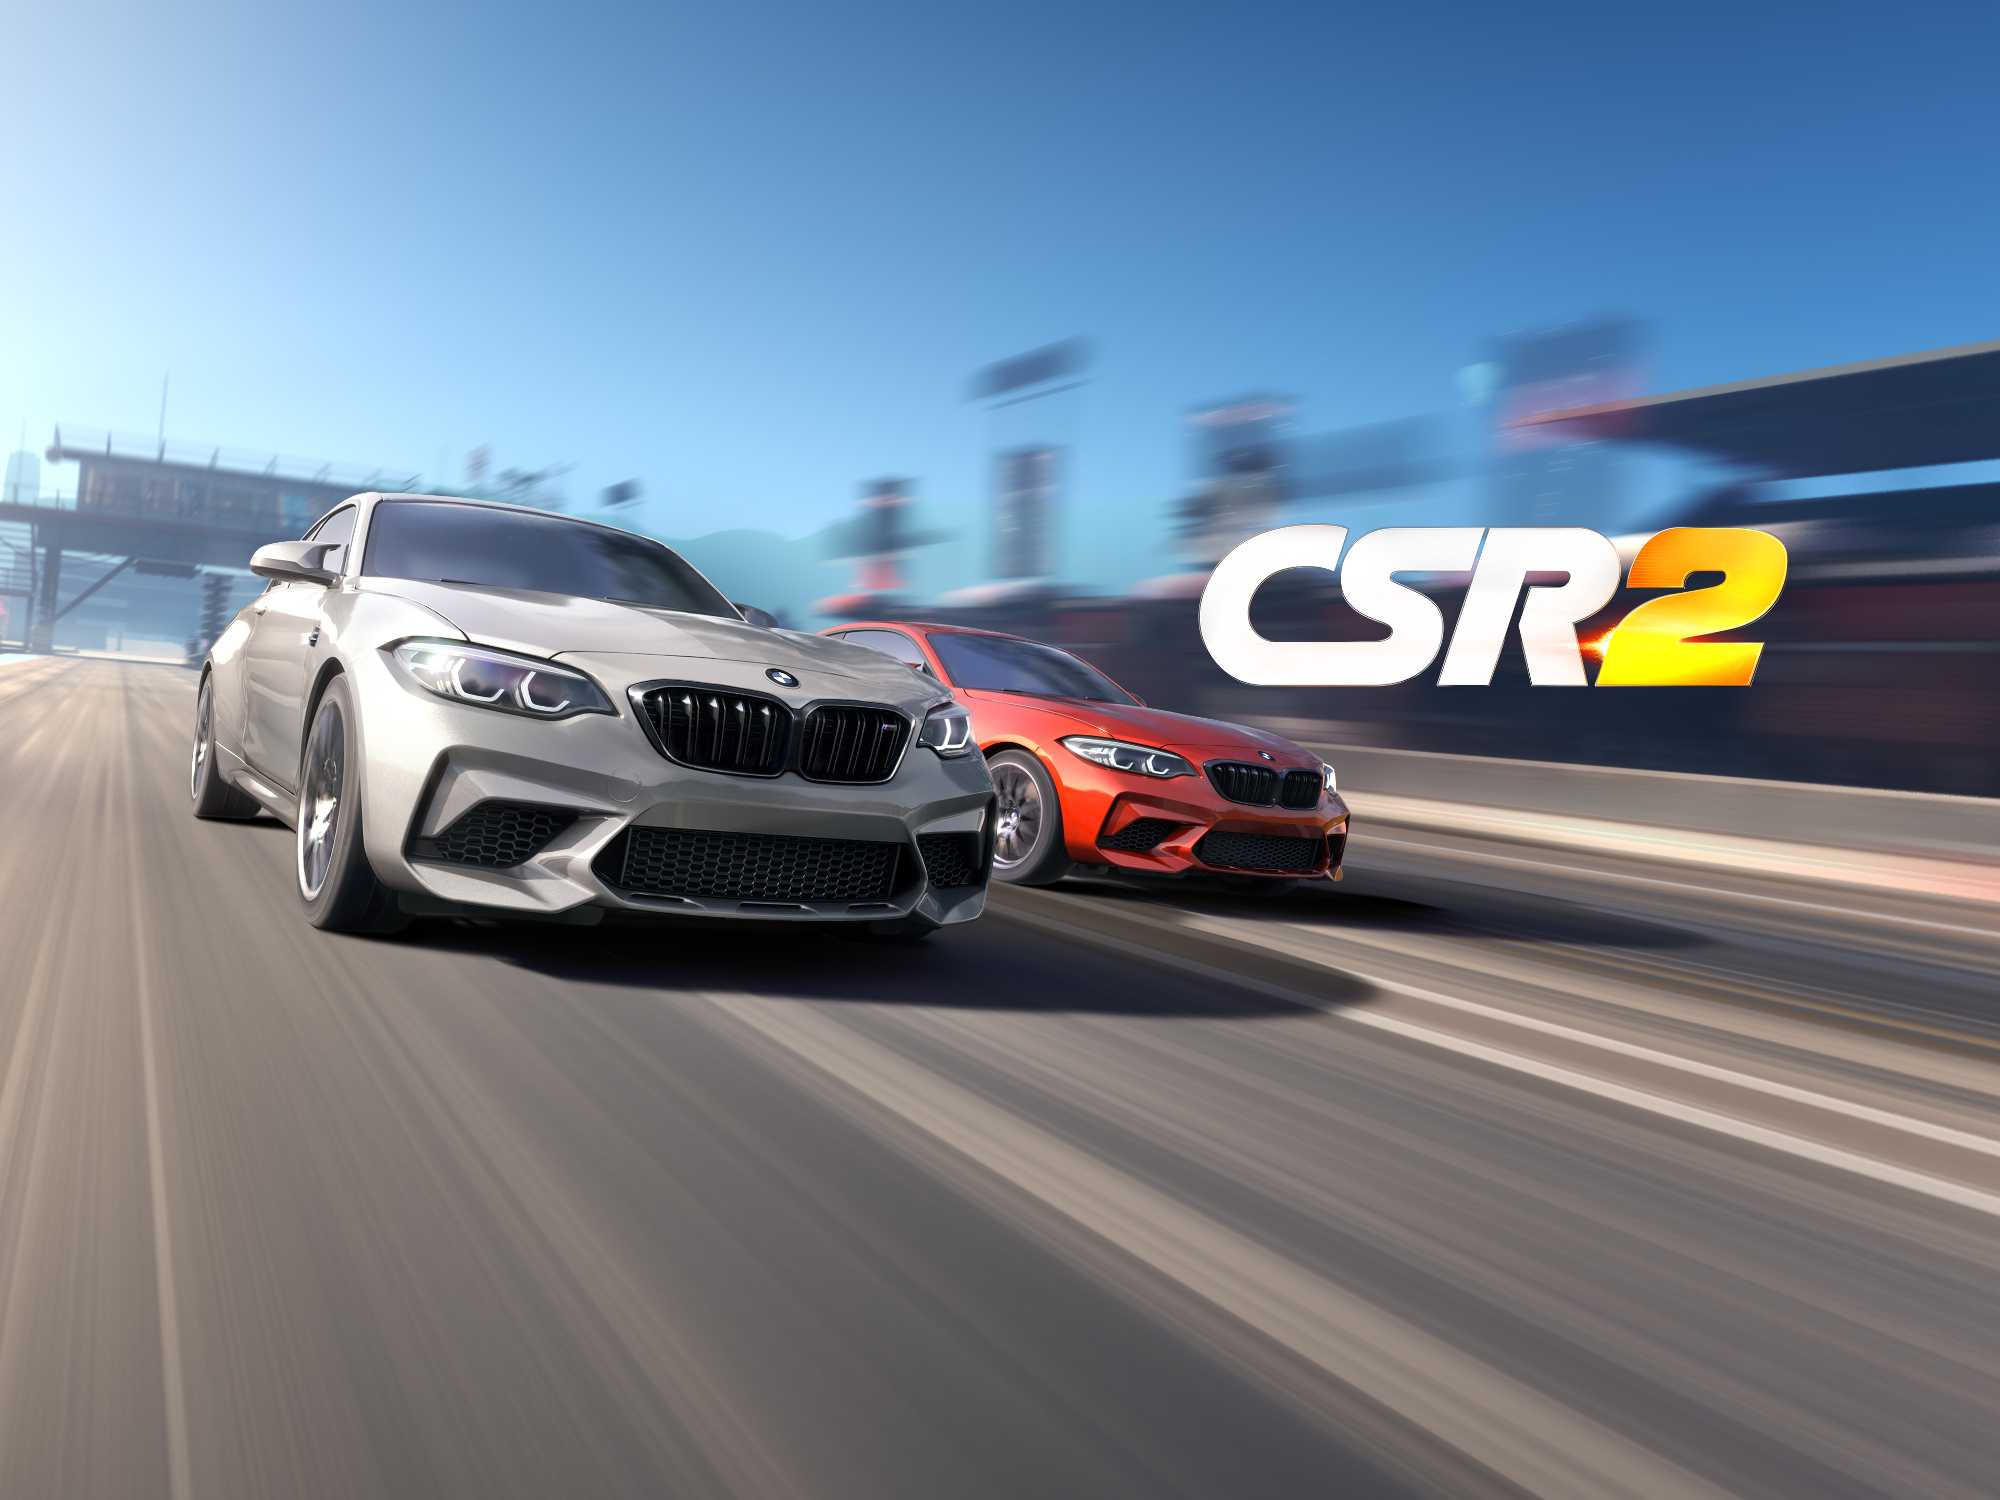 M Power Meets Mobile Gaming New Bmw M2 Competition Debuts In Csr